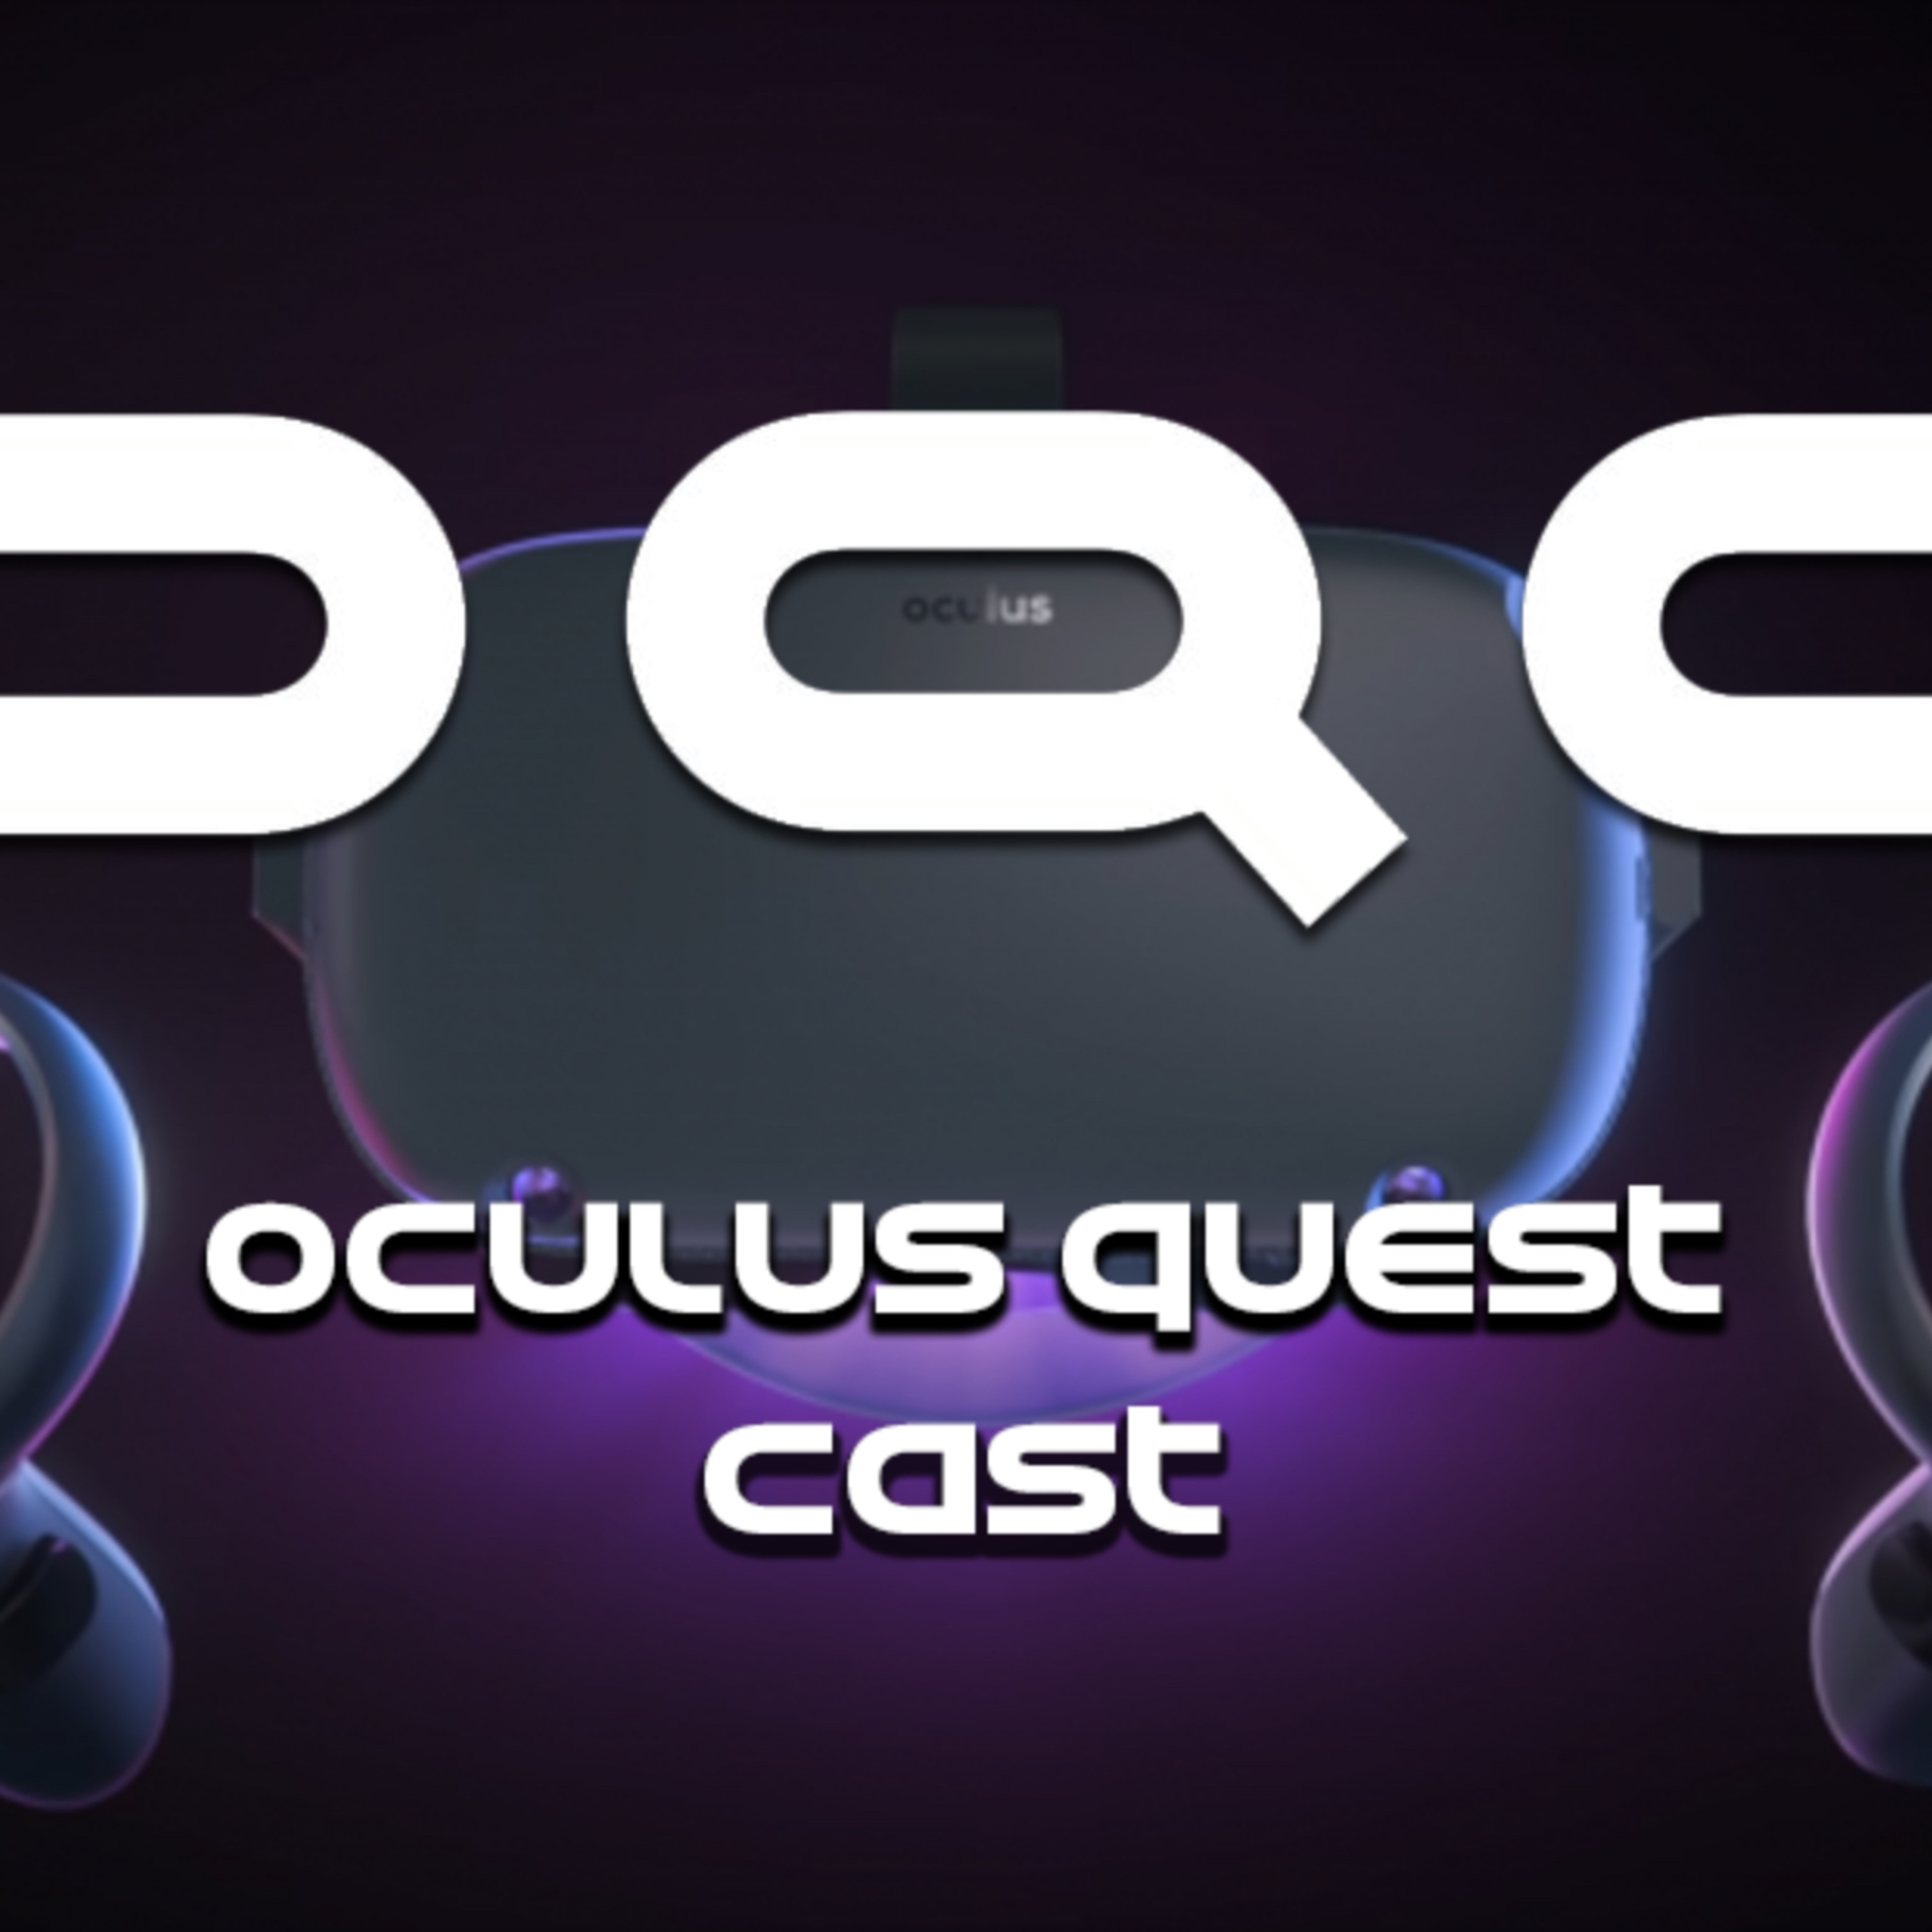 Episode 21 - Top 10 Games Every Quester Should Own, Differing Opinions on VR, If you Have Oculus Link, Claim a Free Game Key!